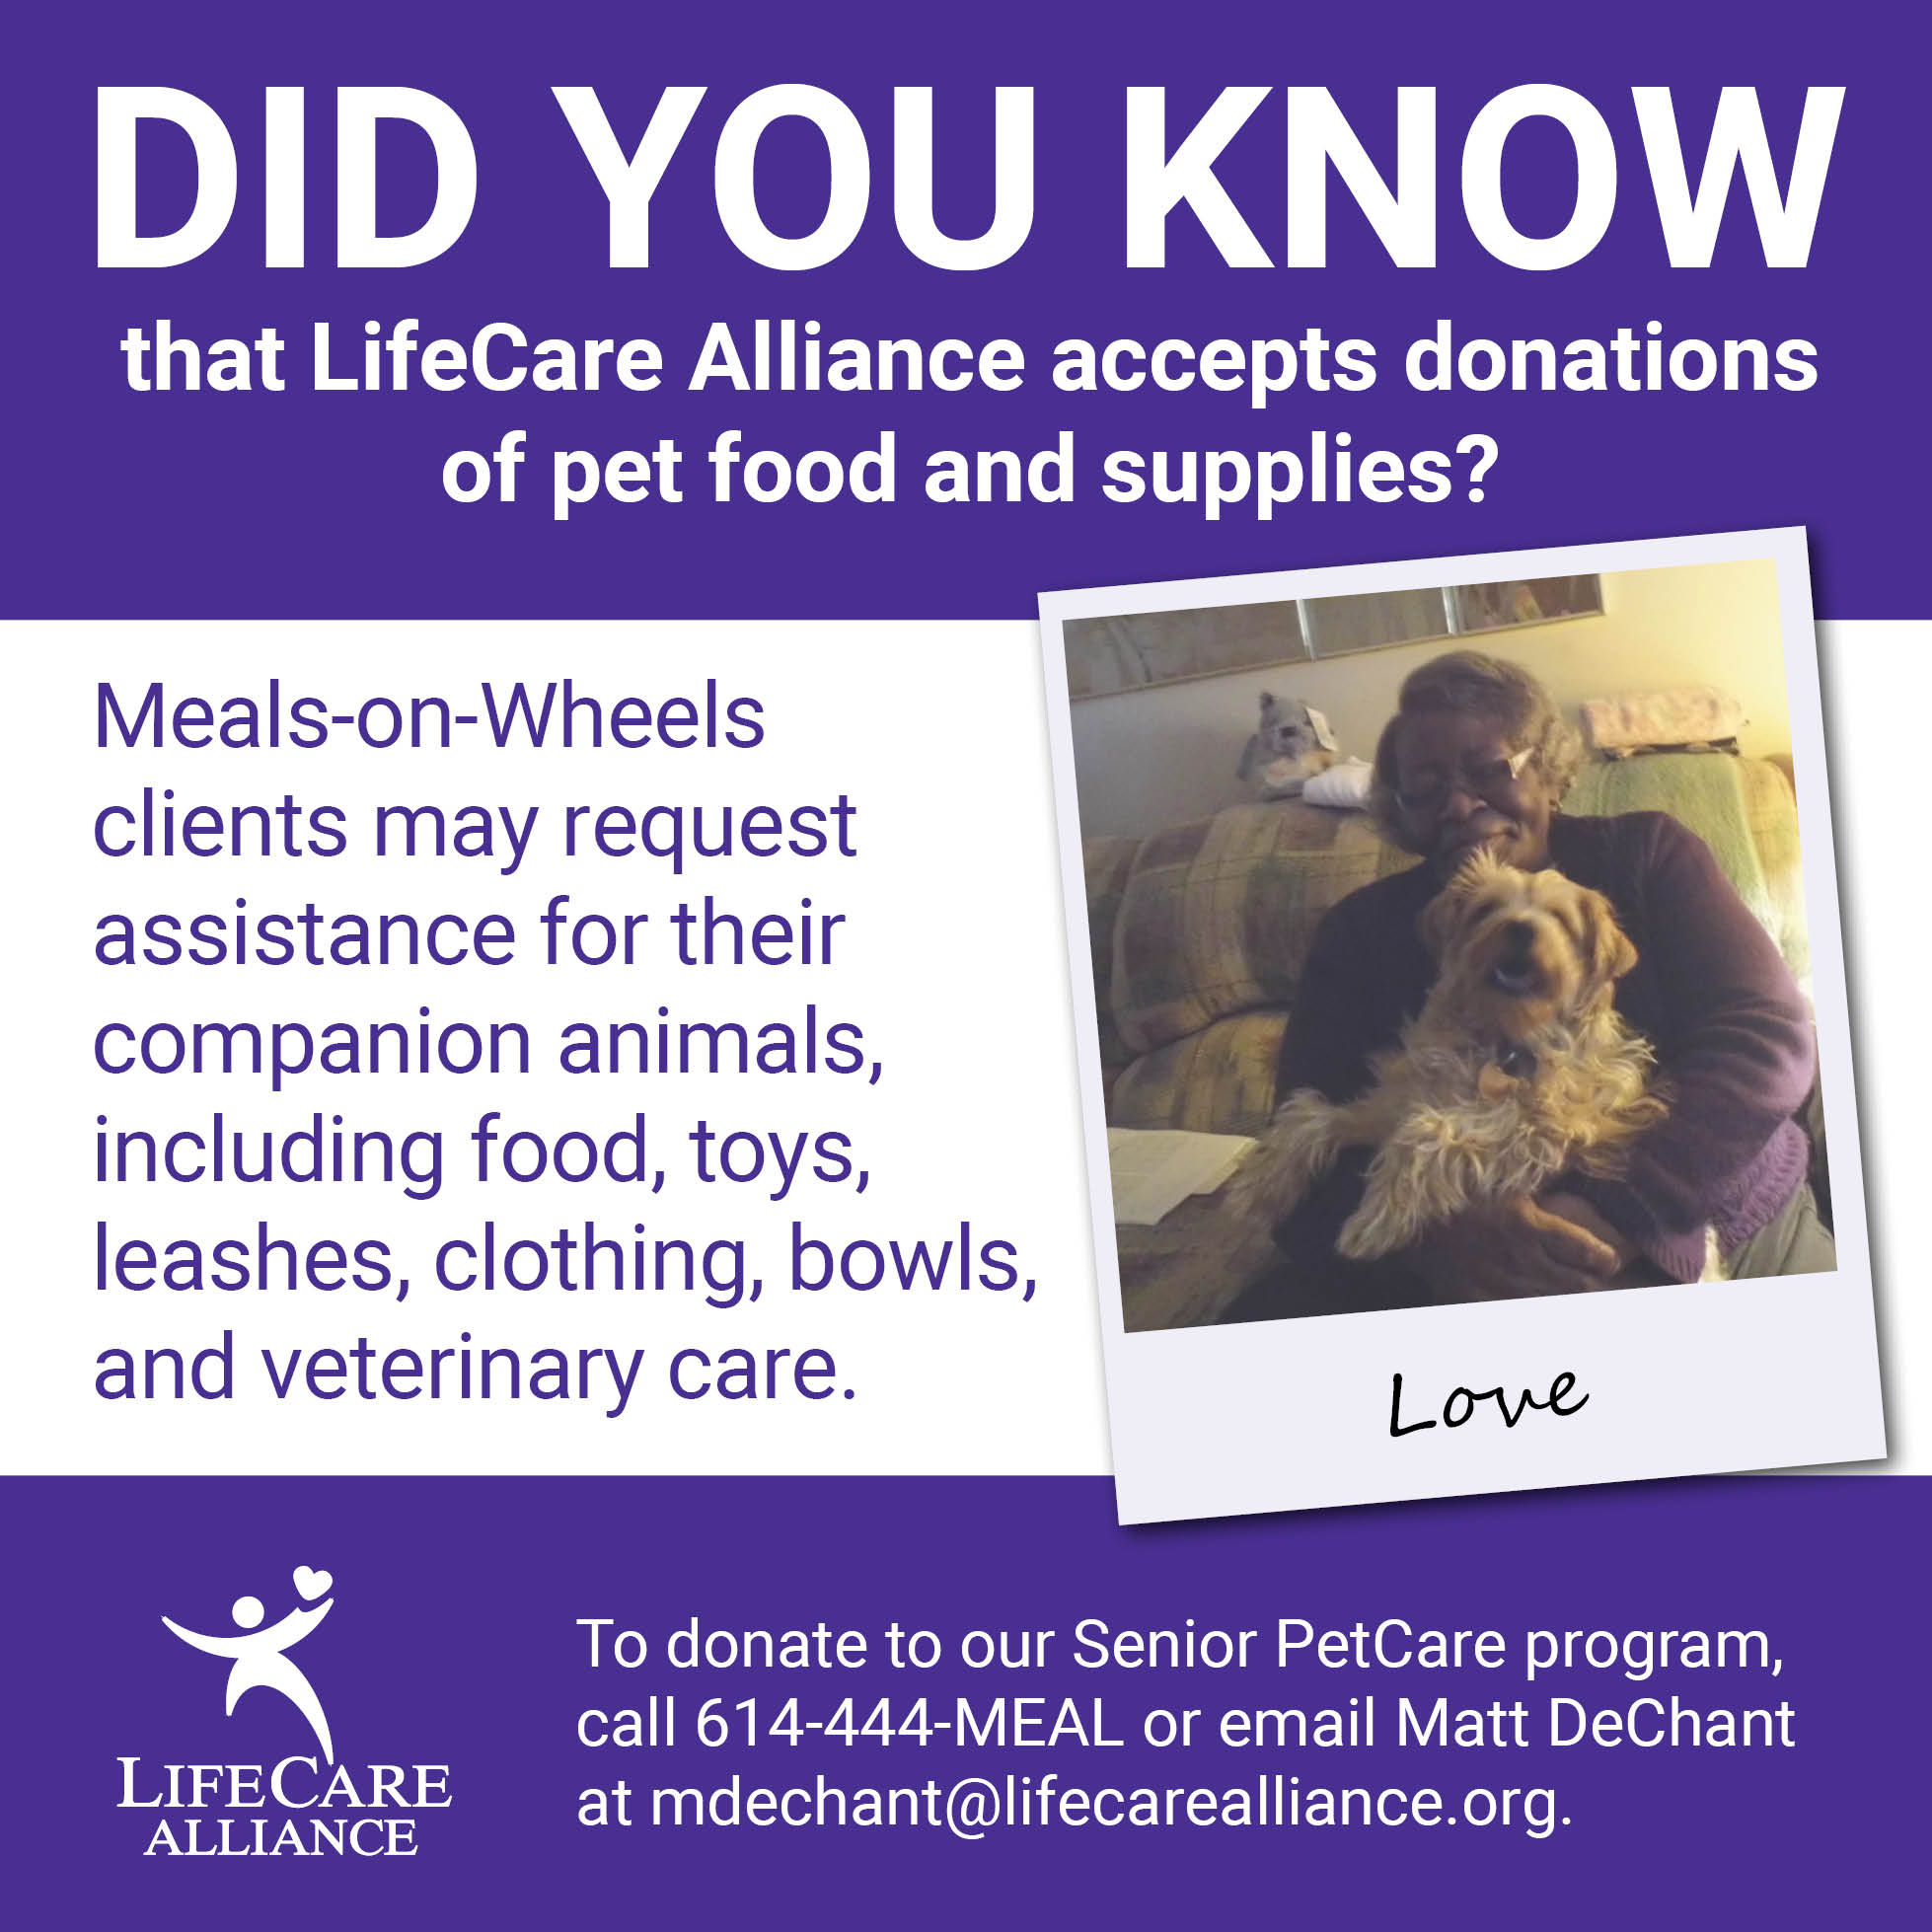 Meals-on-Wheels clients may request assistance for their companion animals.